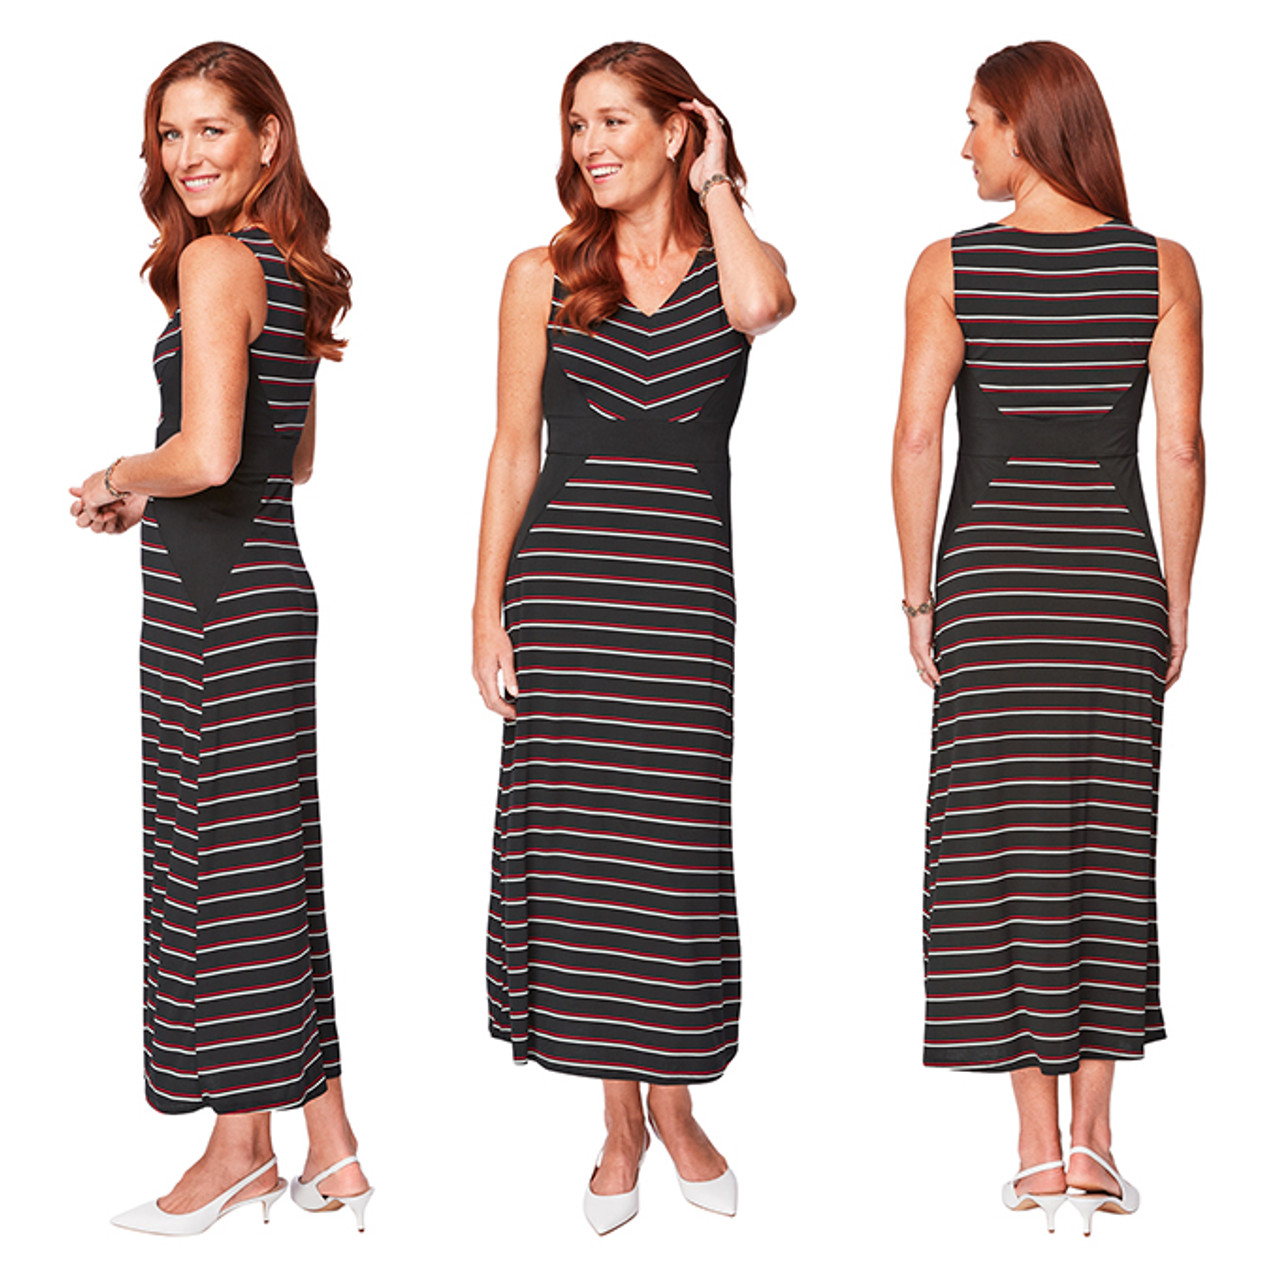 c00b7f7a17f Women's clothing online and in Canada   Northern Reflections